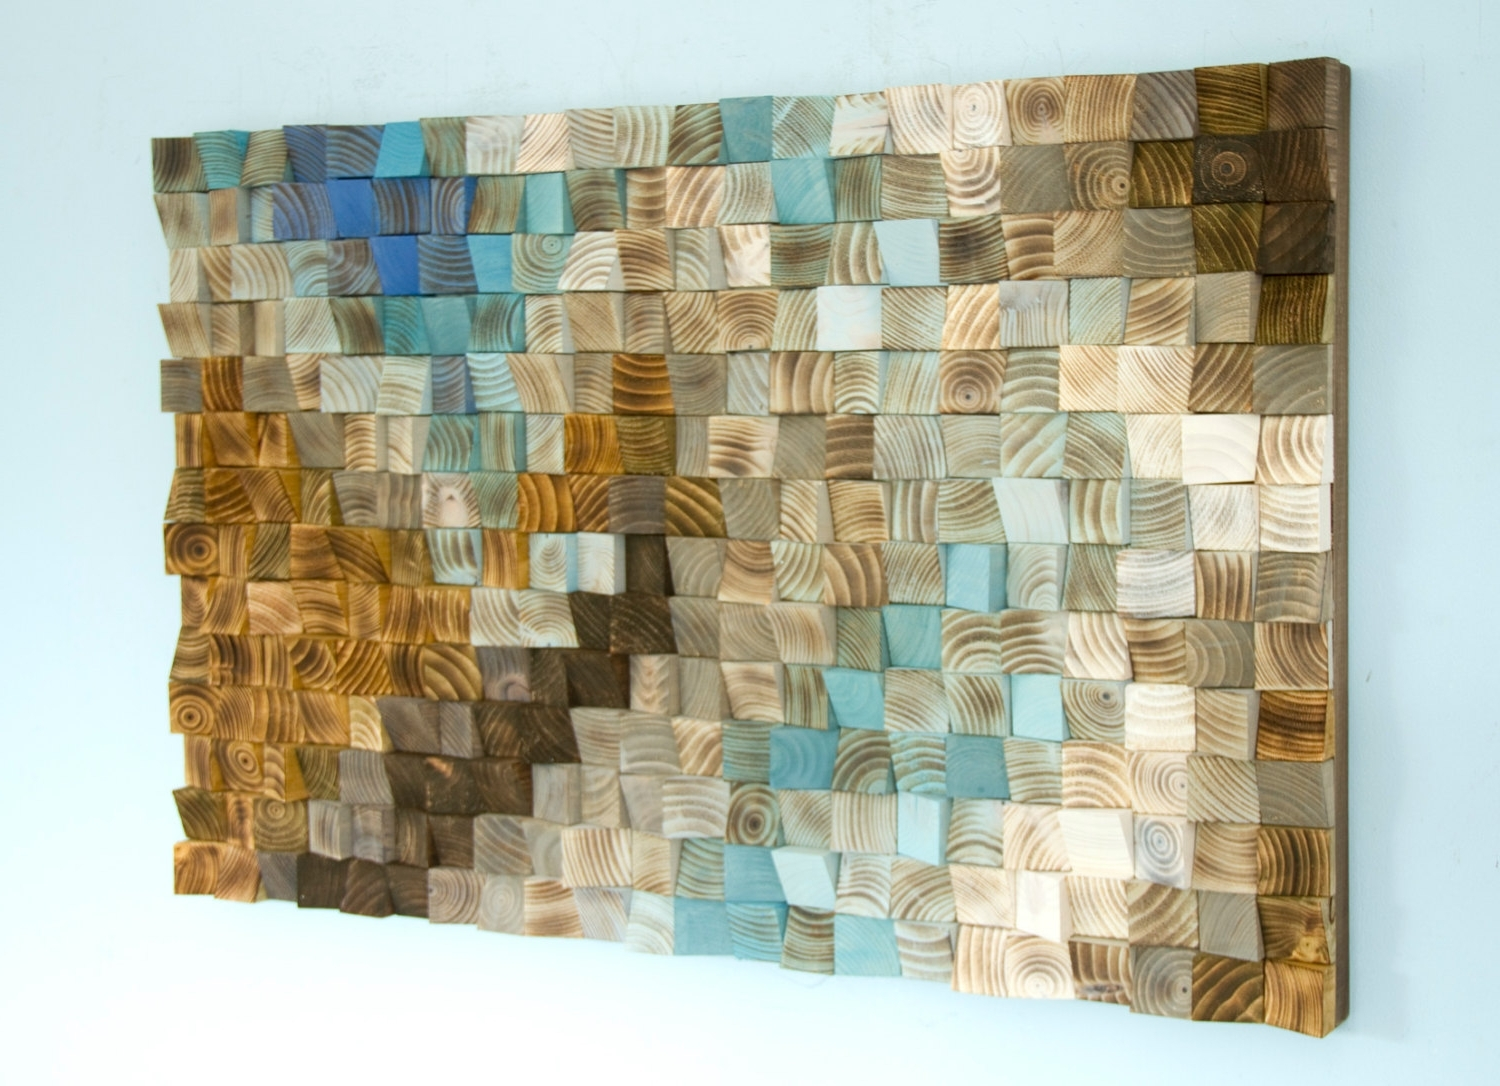 Widely Used Mosaic Wall Art Elegant Wood Office Decor Geometric 24 X 36 Within Within Mosaic Wall Art (View 8 of 15)